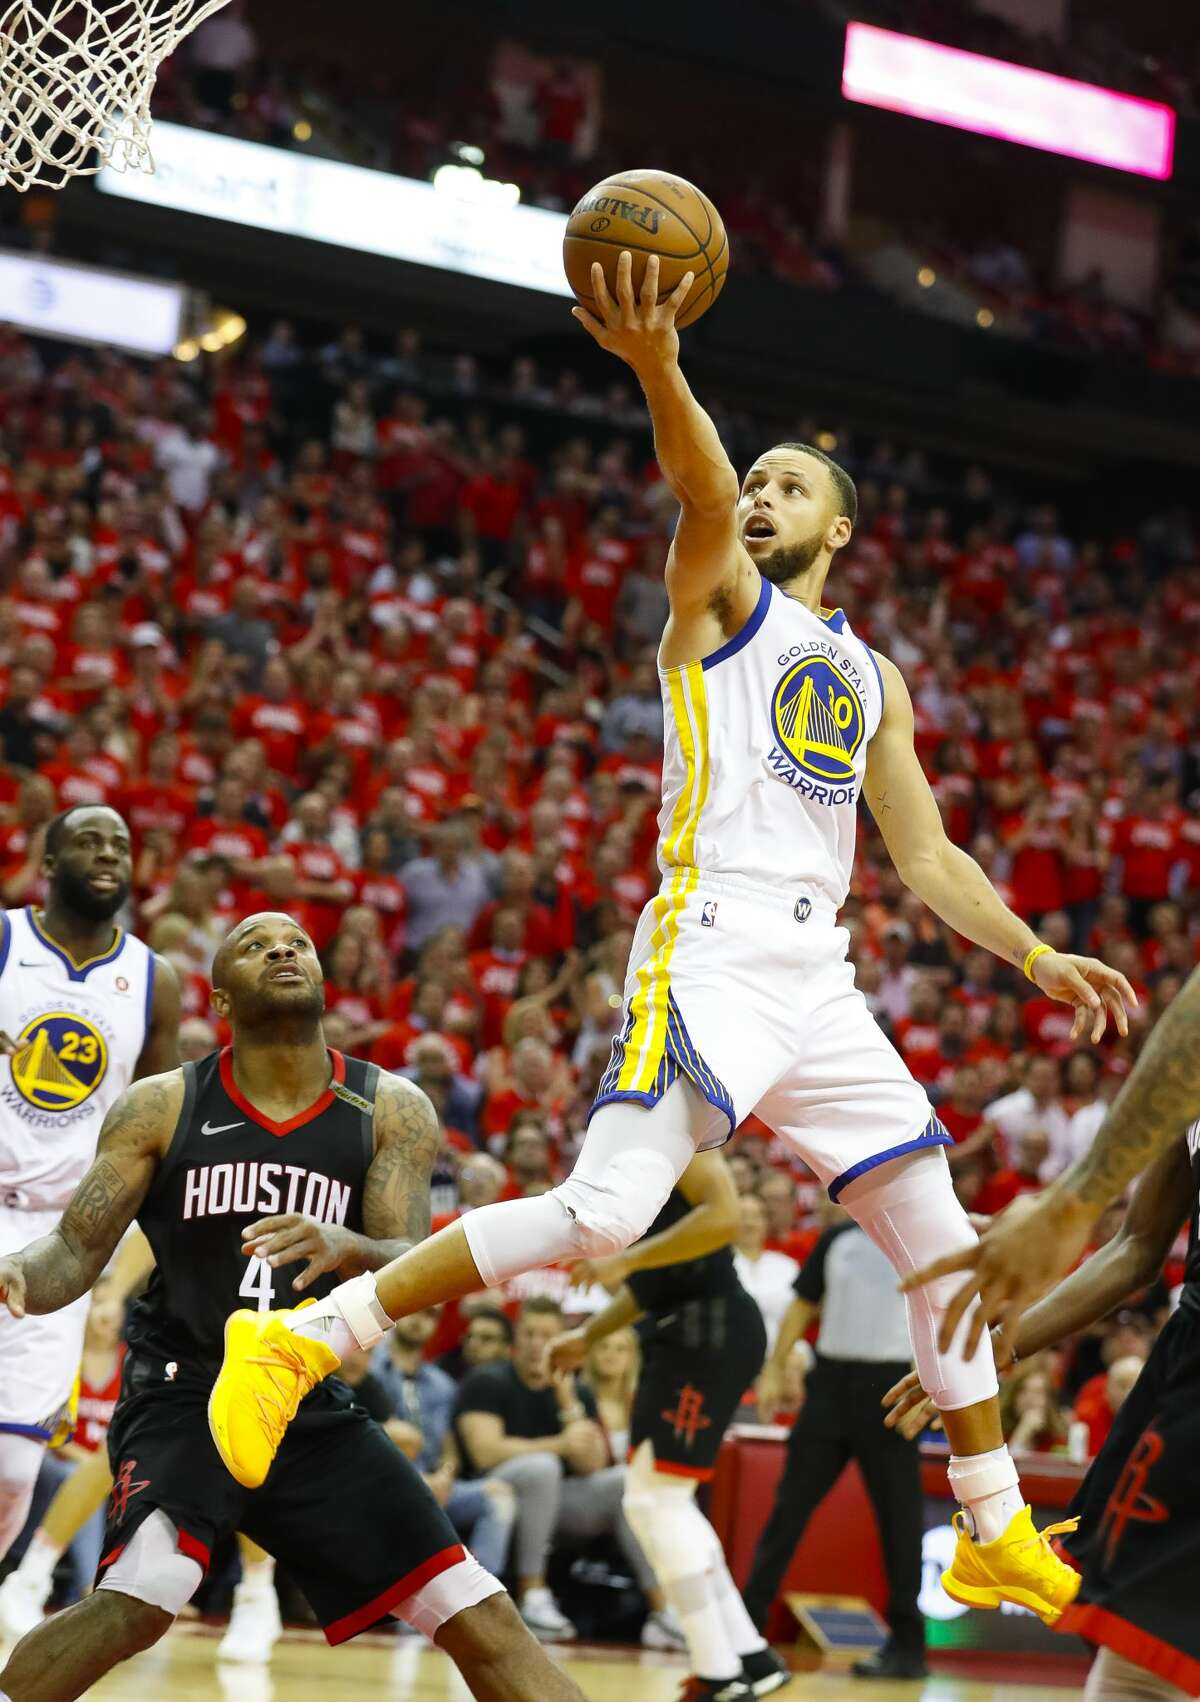 Golden State Warriors guard Stephen Curry (30) shoots over Houston Rockets forward PJ Tucker (4) during the second half of Game 5 of the NBA Western Conference Finals at Toyota Center on Thursday, May 24, 2018, in Houston. ( Brett Coomer / Houston Chronicle )